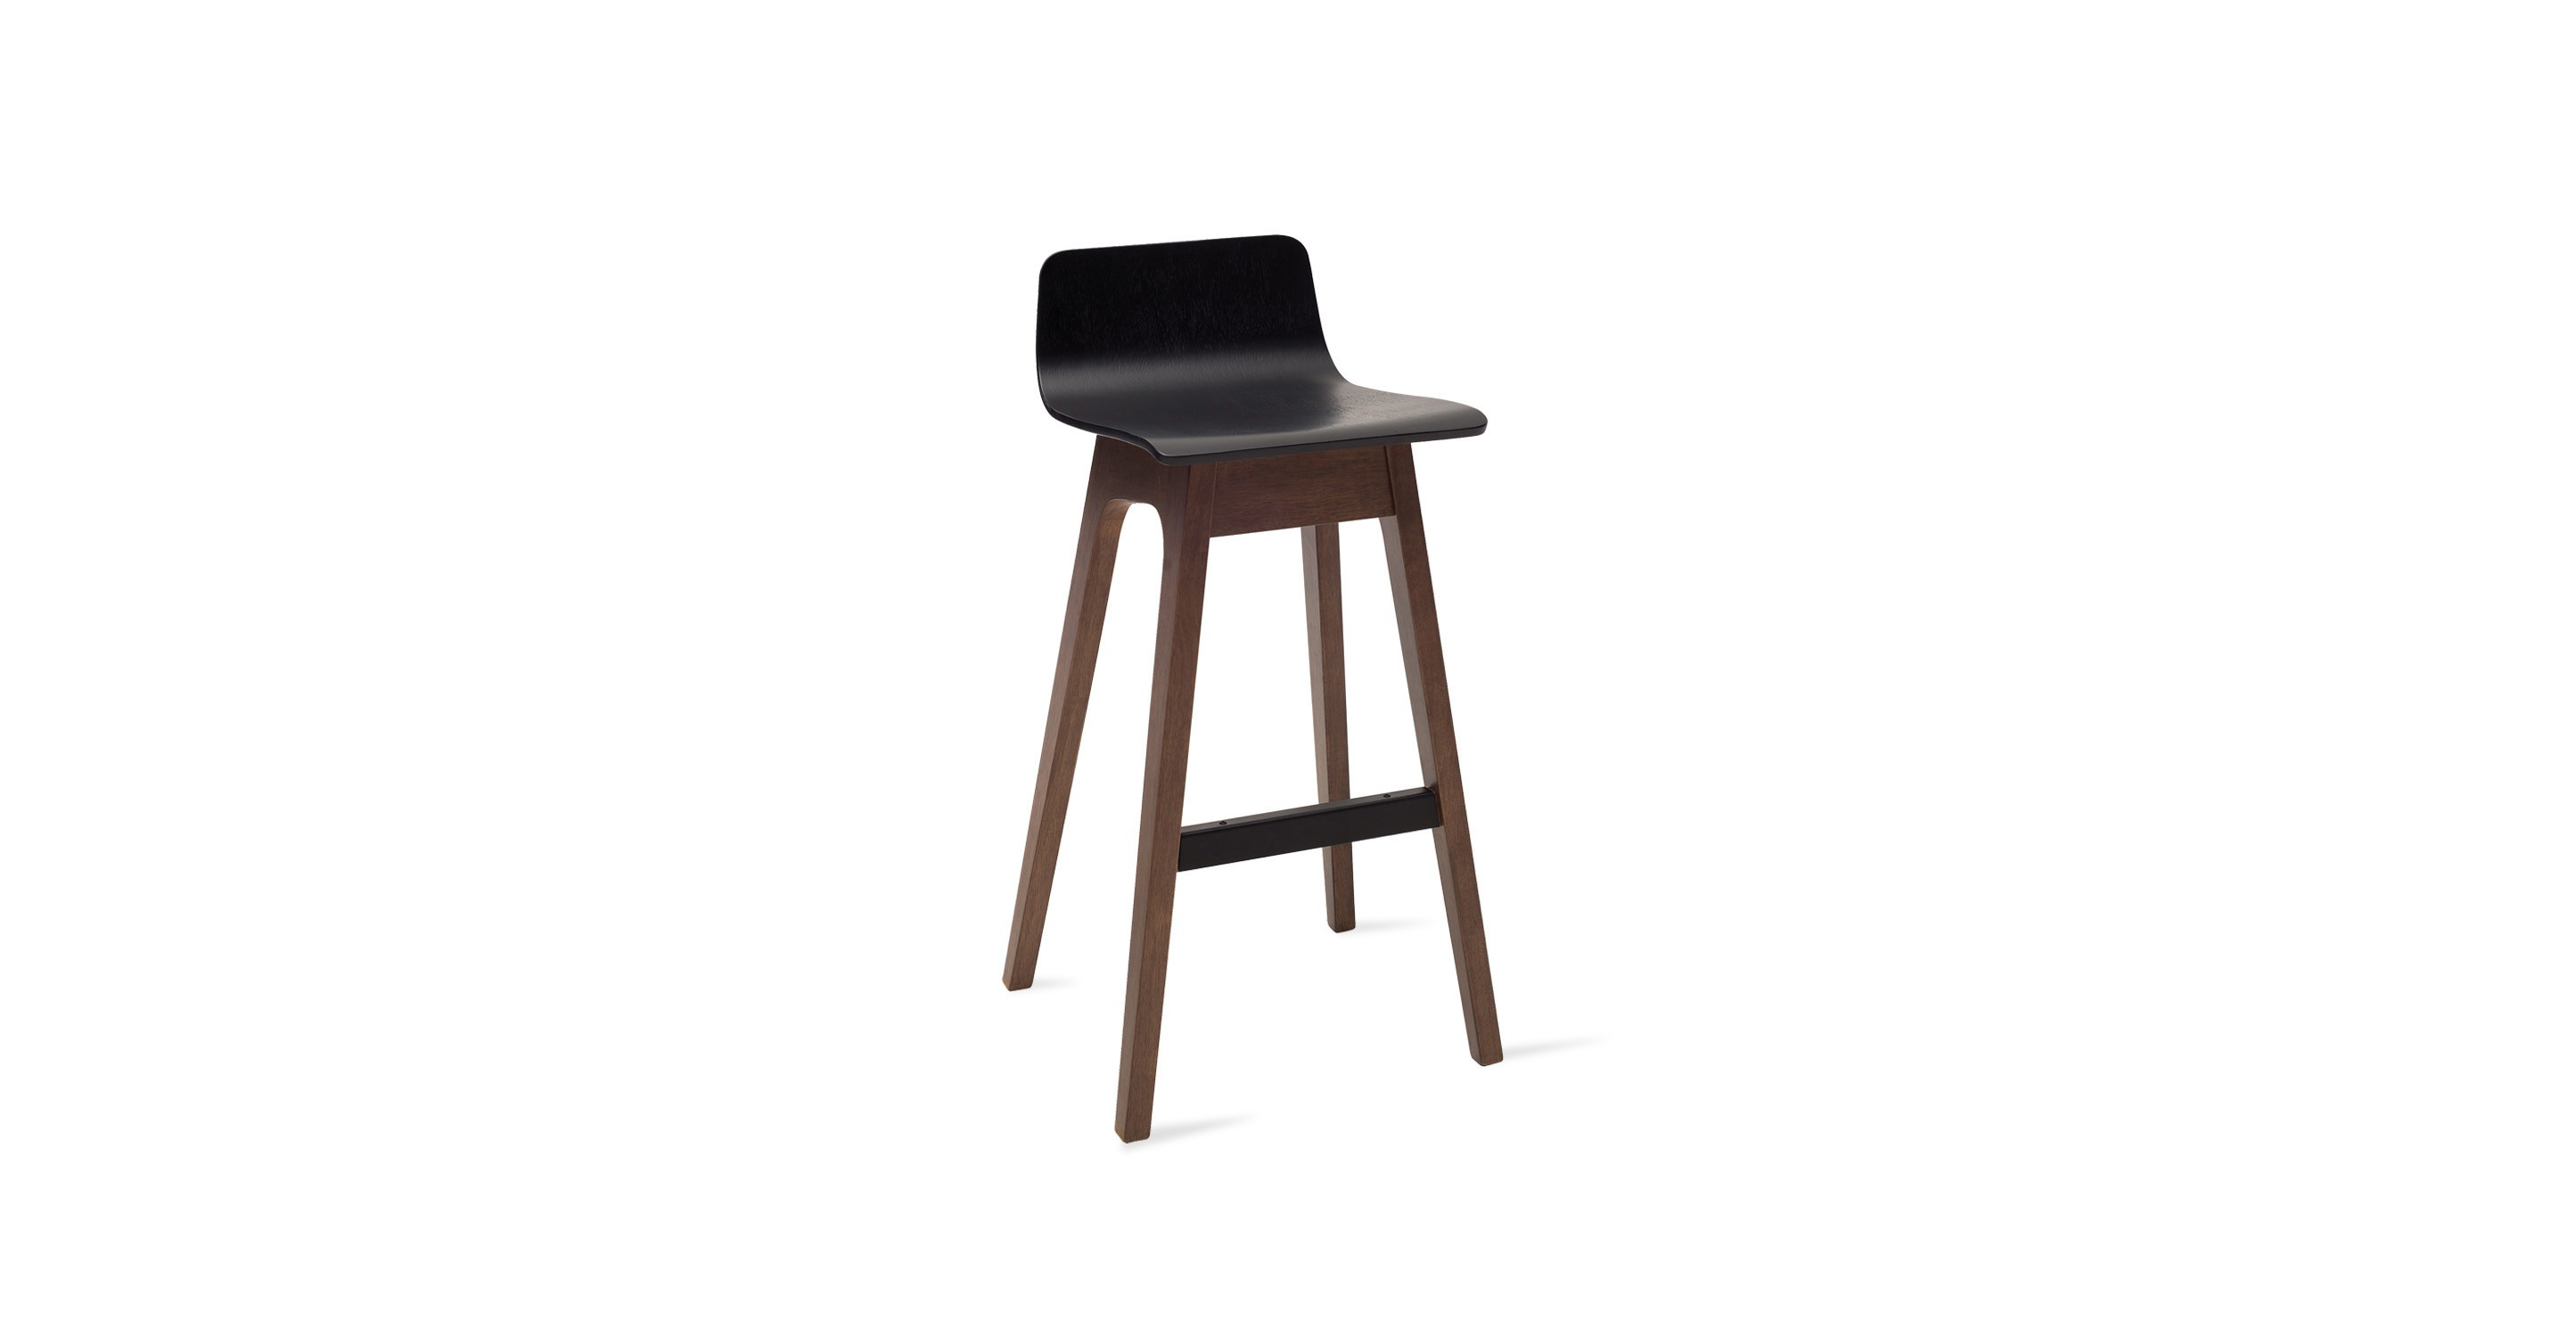 Wonderful image of Ava Black Bar Stool Chairs & Stools Article Modern Mid Century  with #61473B color and 2890x1500 pixels